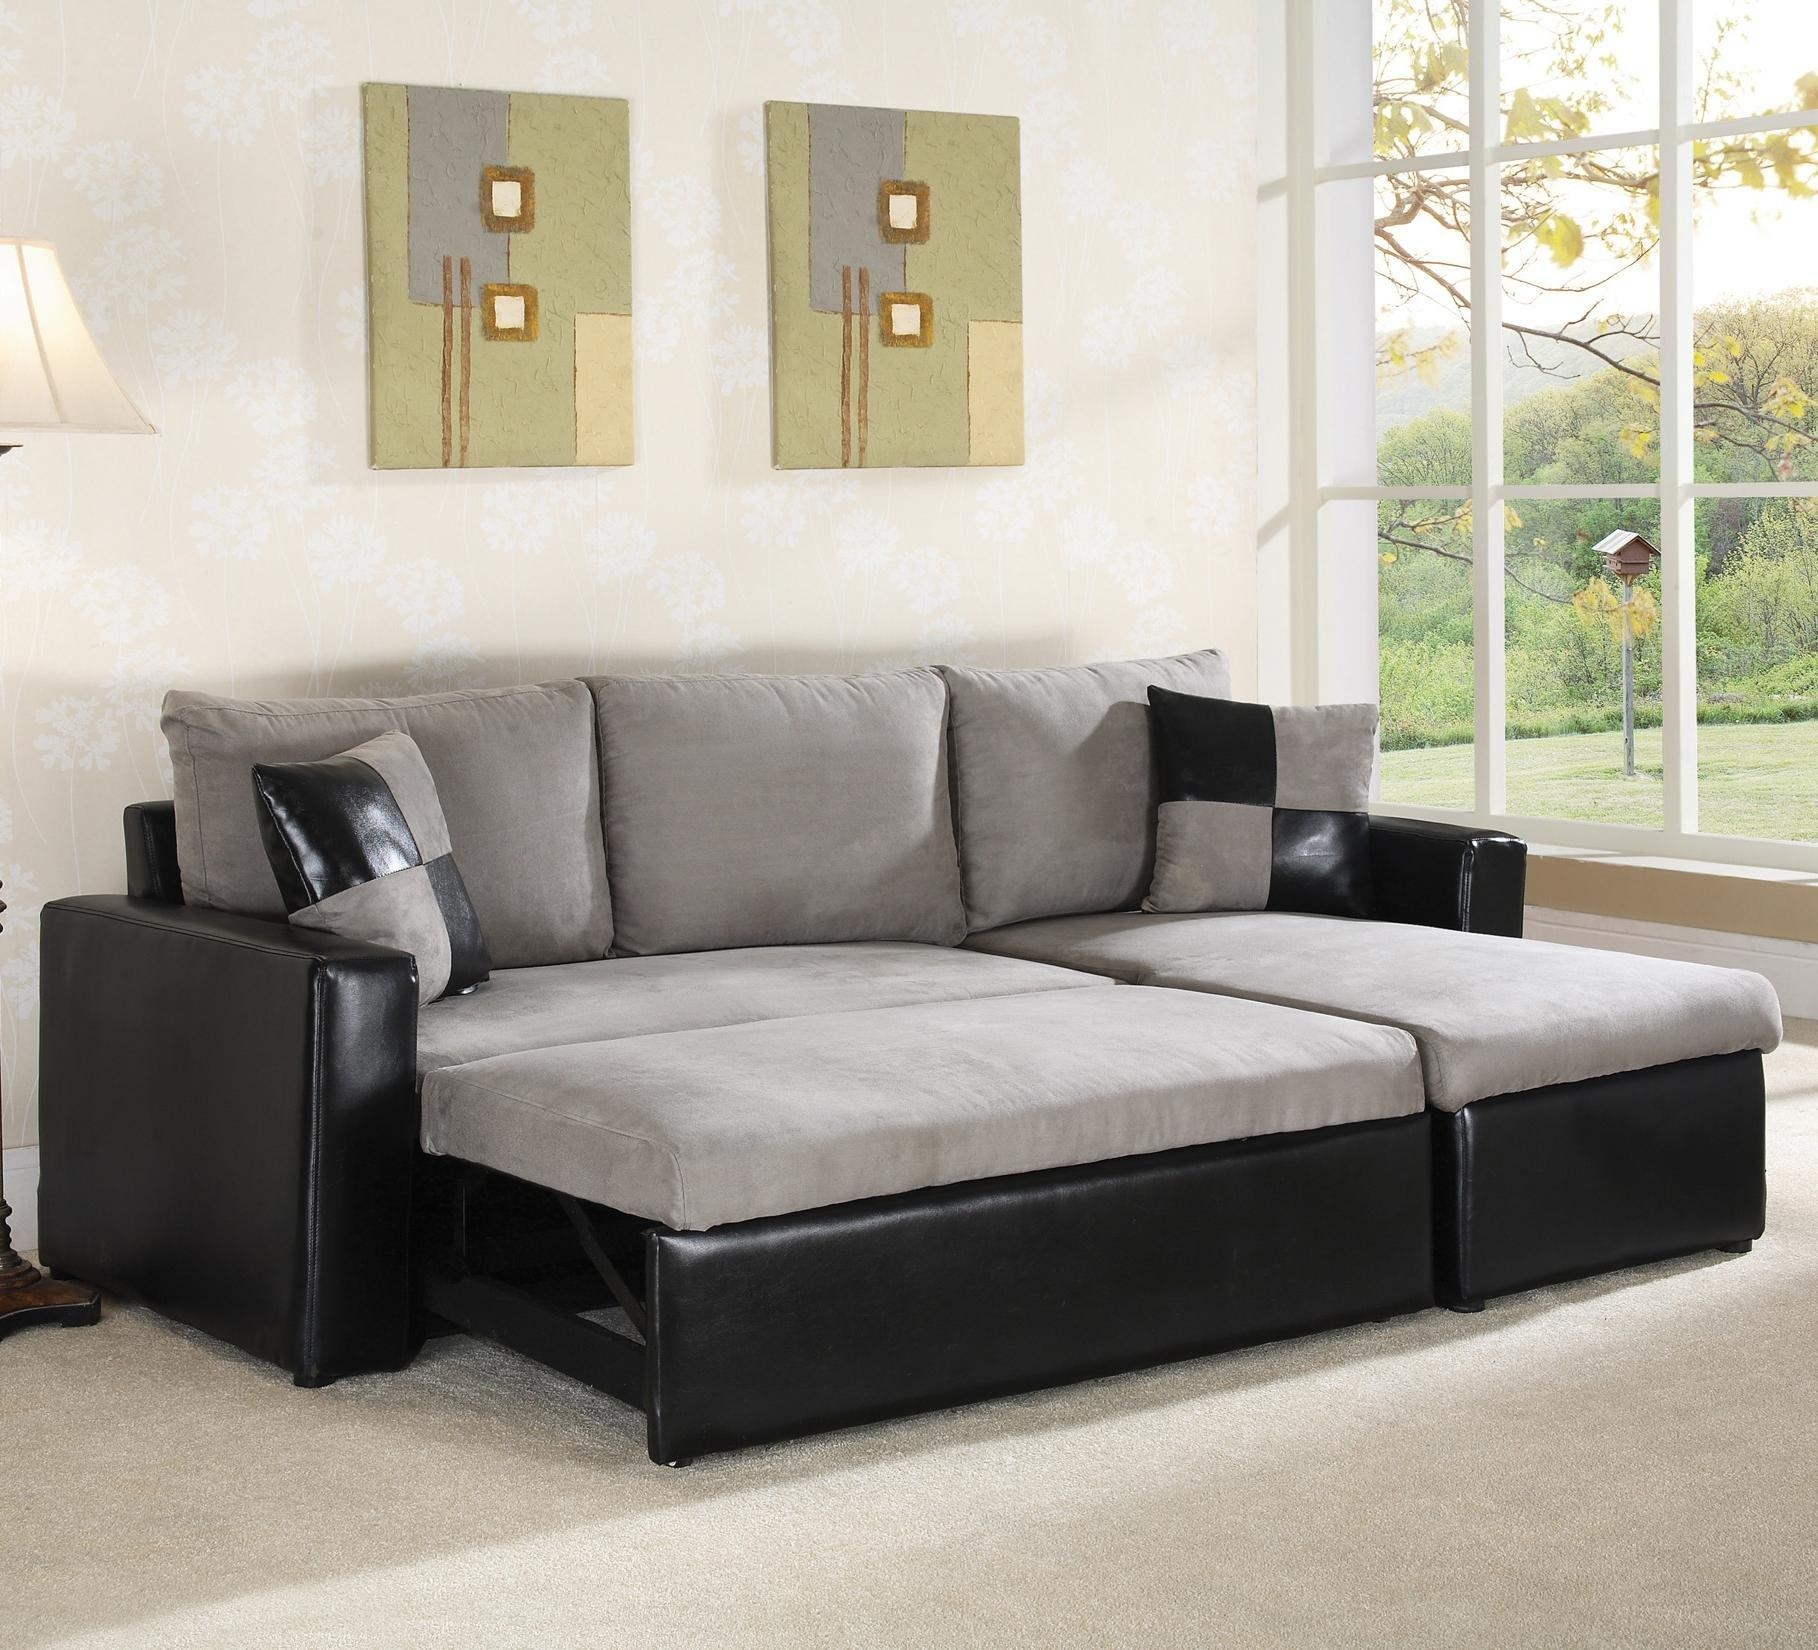 Large Grey Sleeper Sofa With Black Leather Base And Grey Black With Black Leather Sectional Sleeper Sofas (Image 9 of 21)